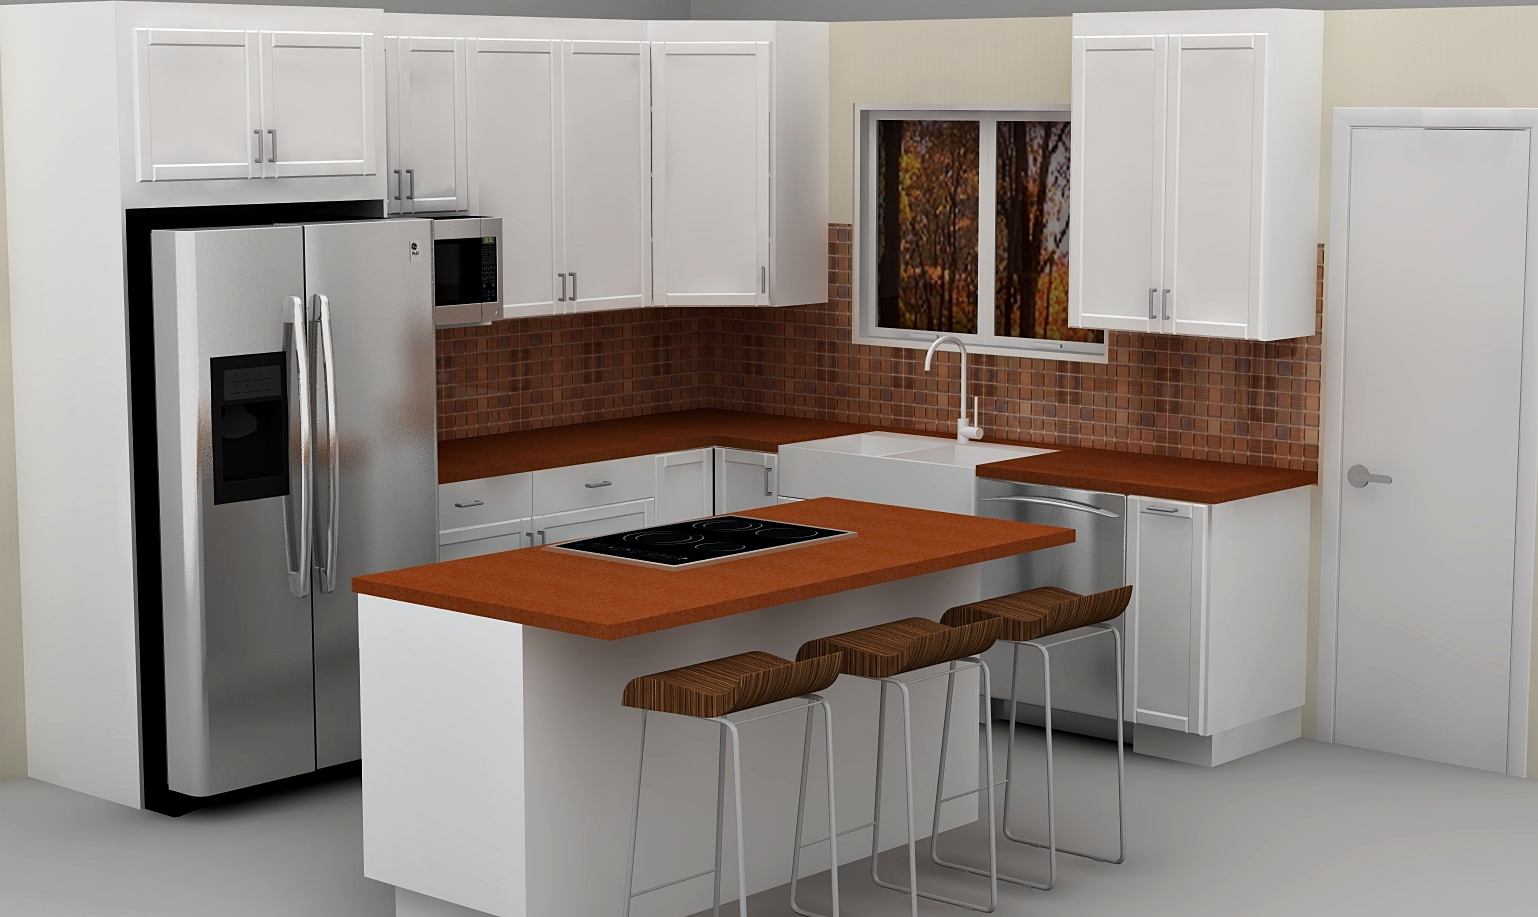 Brighter Kitchen Design Application From IKEA Online (Image 4 of 10)